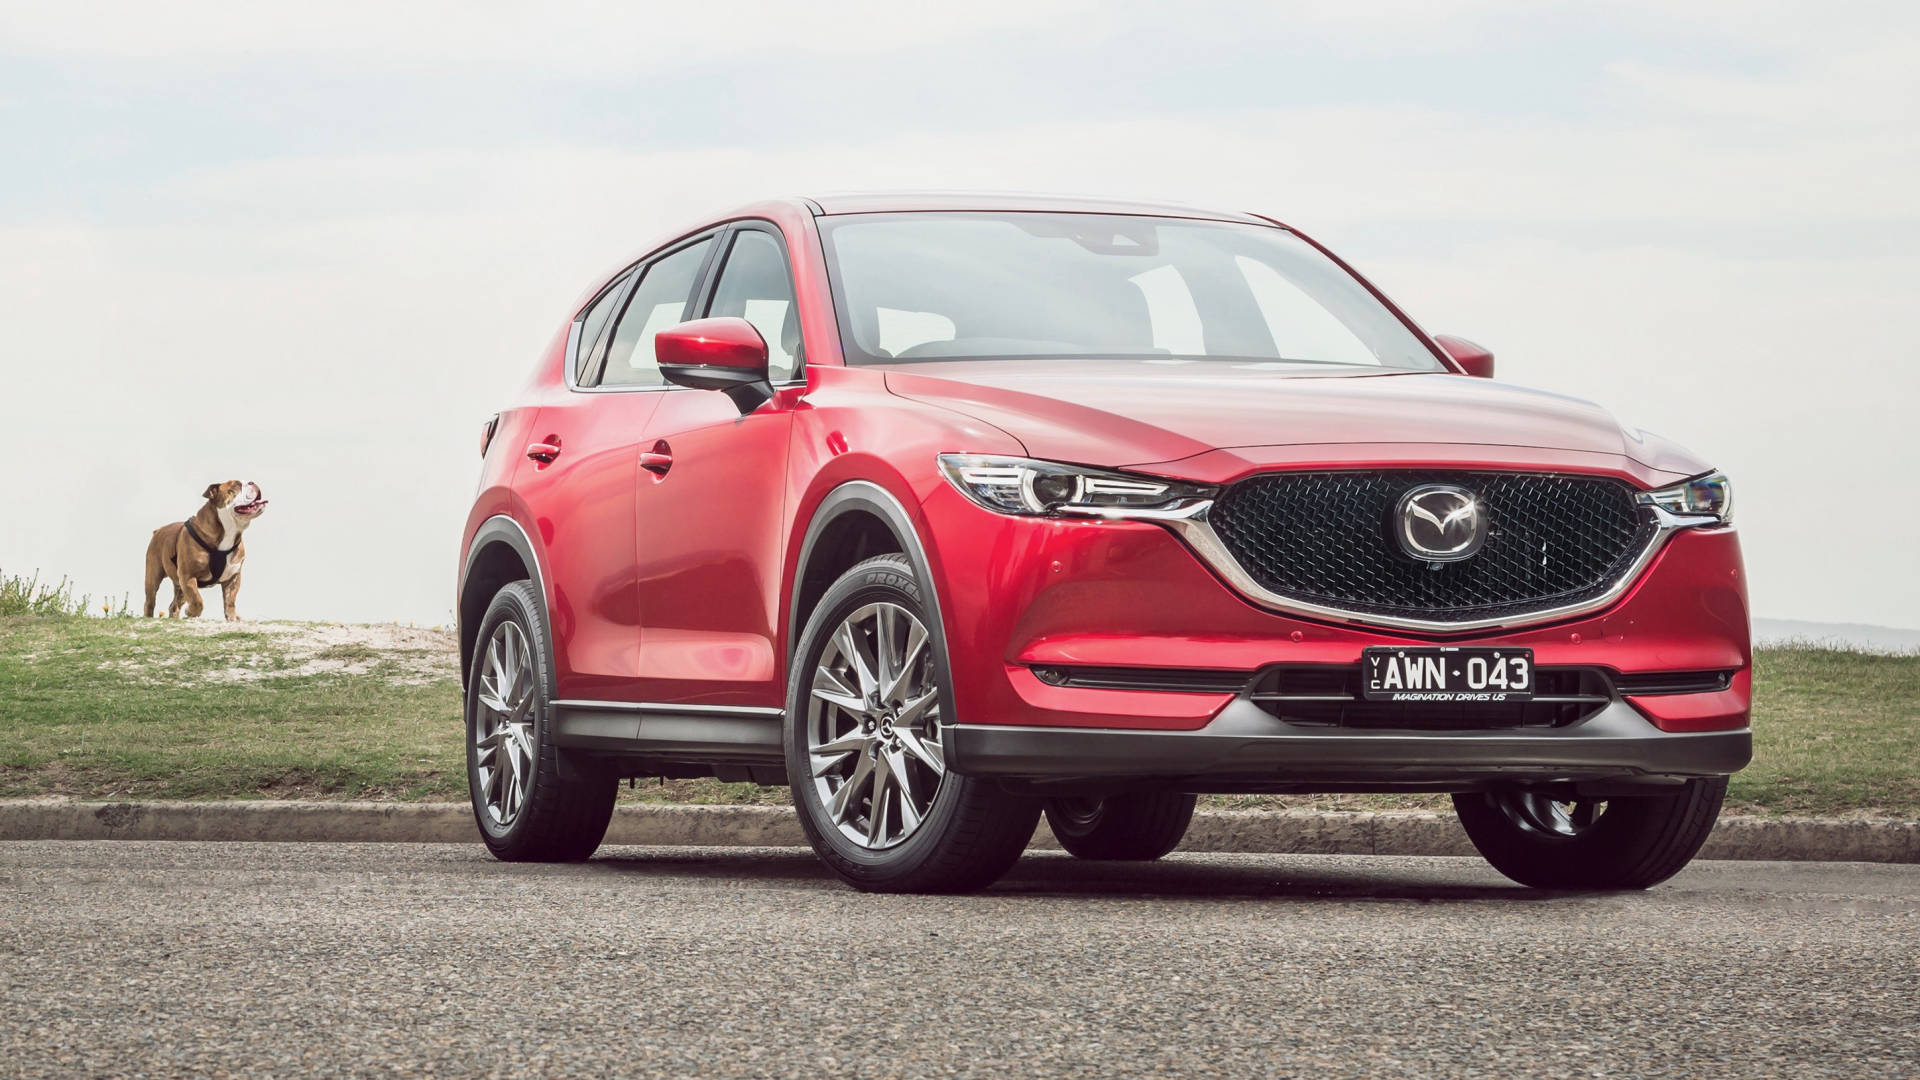 2019 Mazda CX-5 Akera Soul Red Crystal front 3/4 close